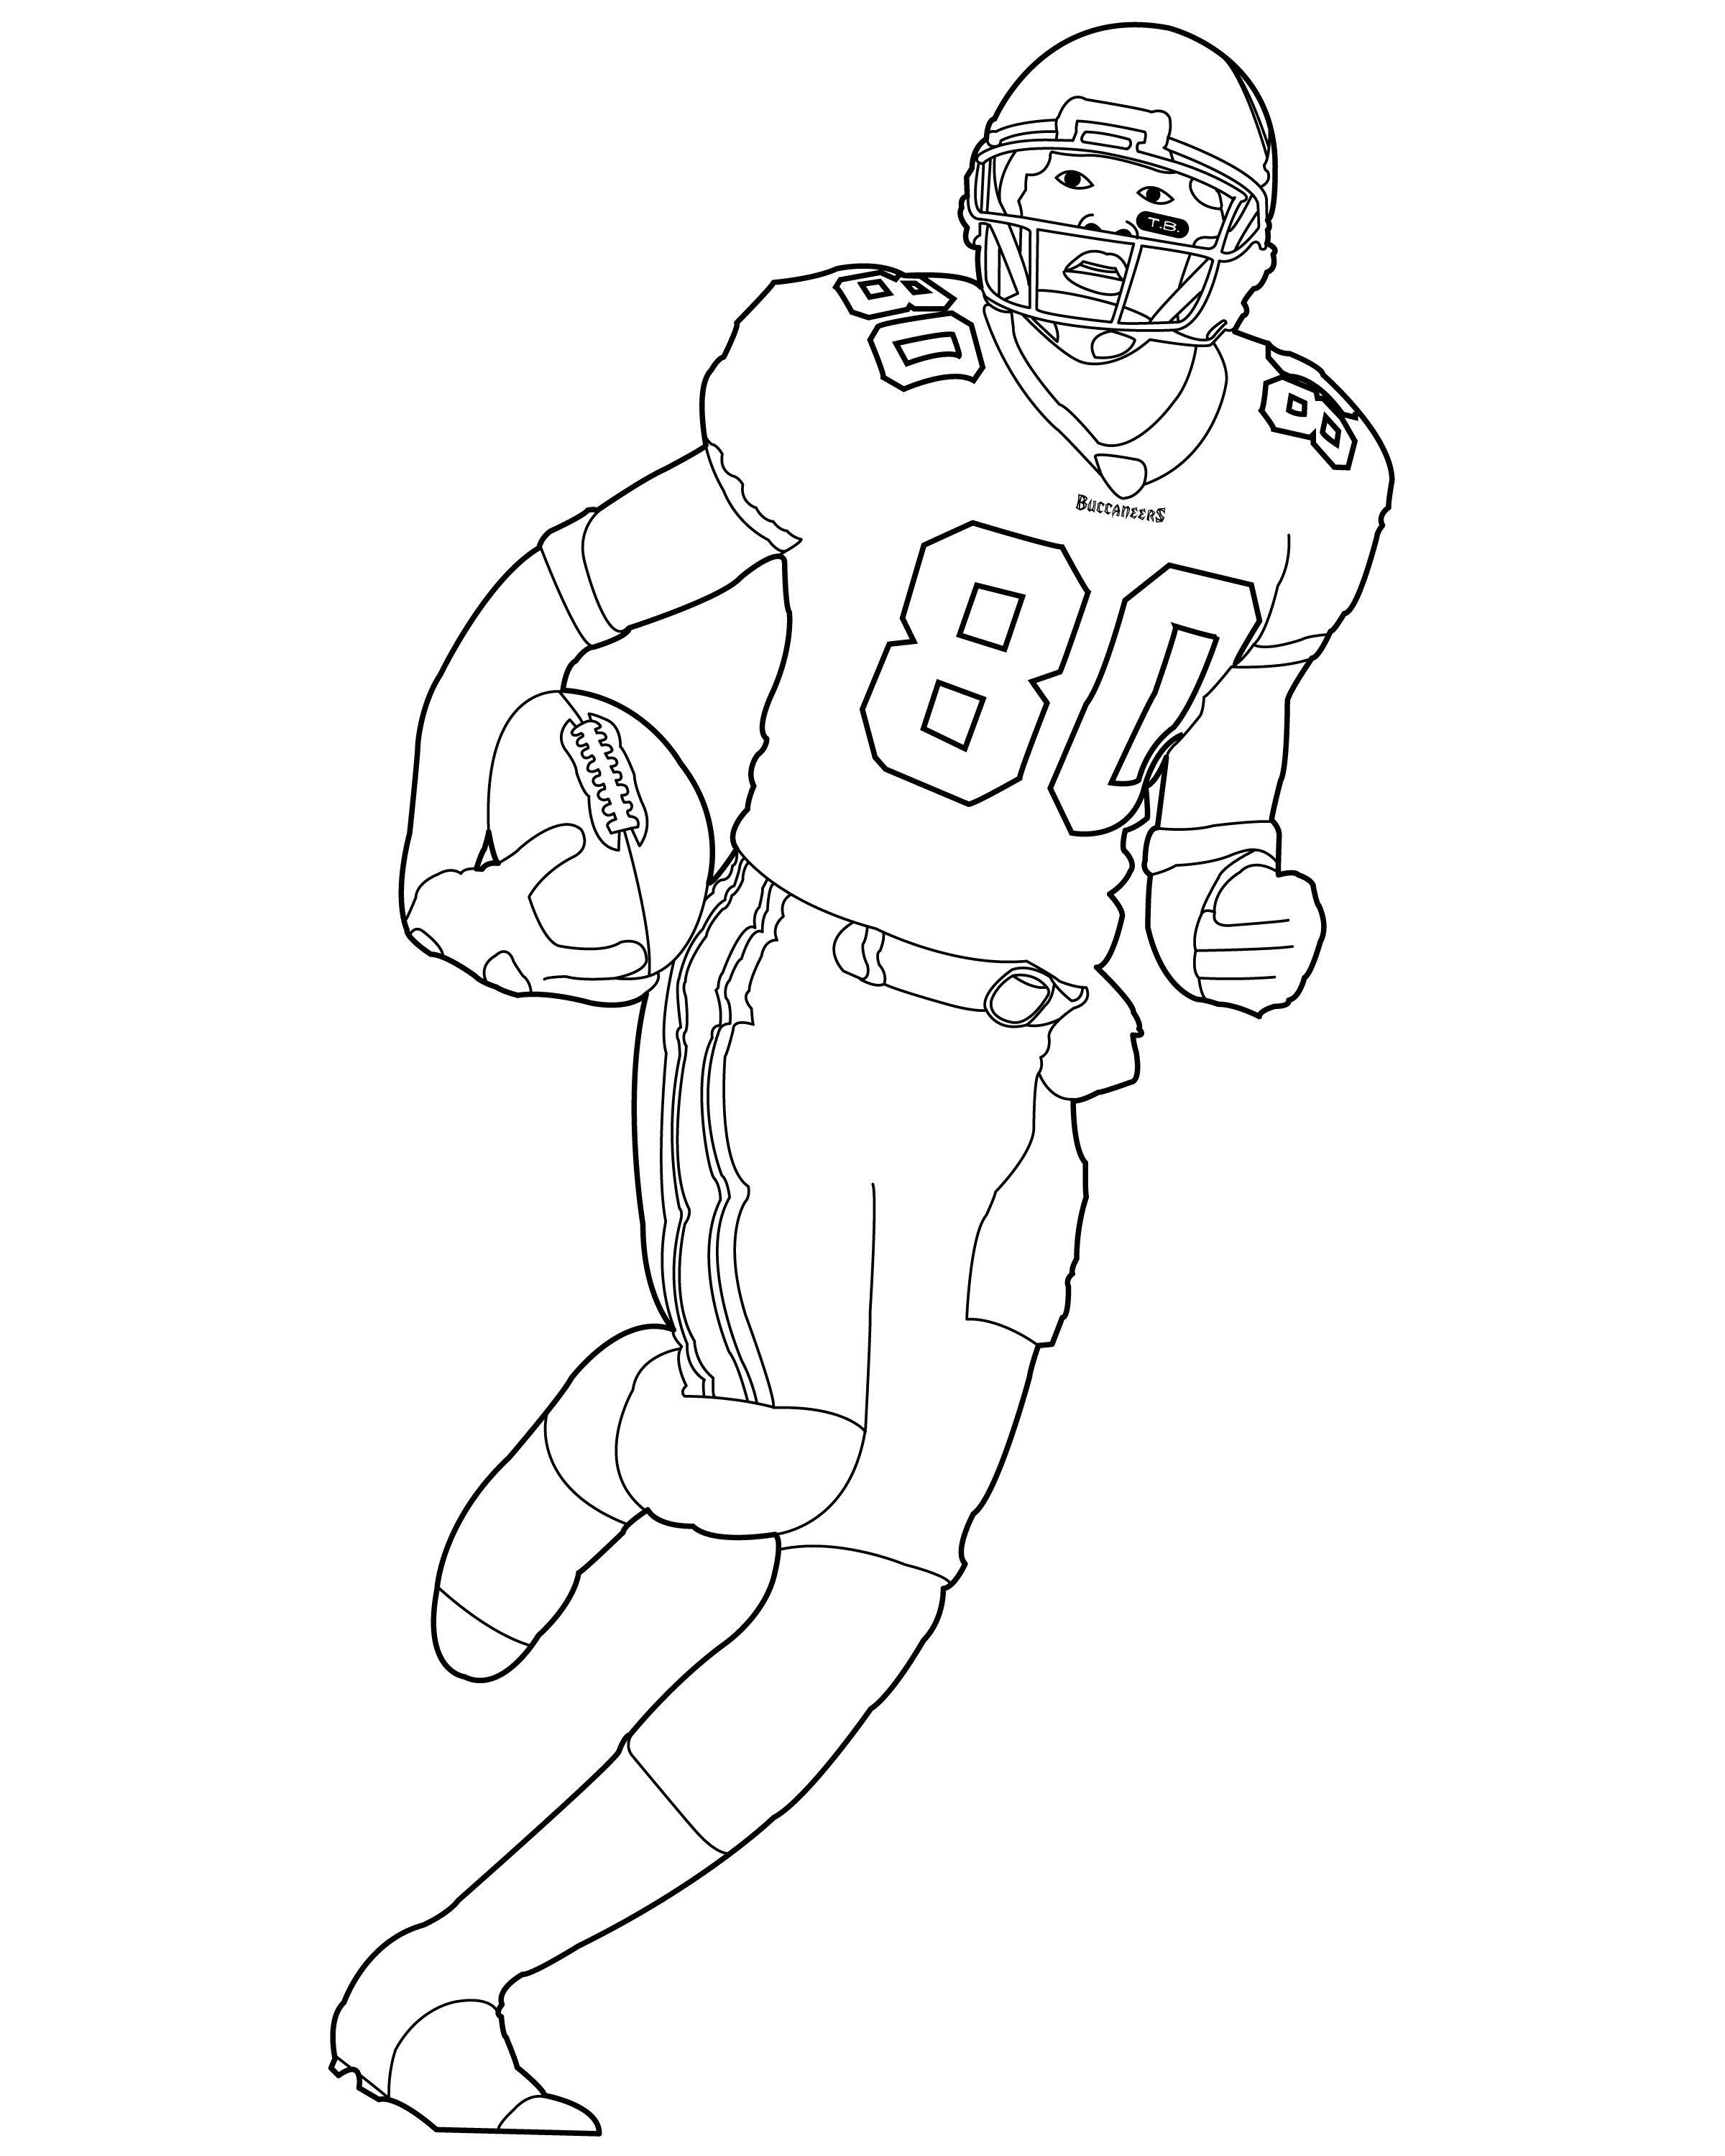 Nfl Coloring Pages Players Football Trophy Idea Football